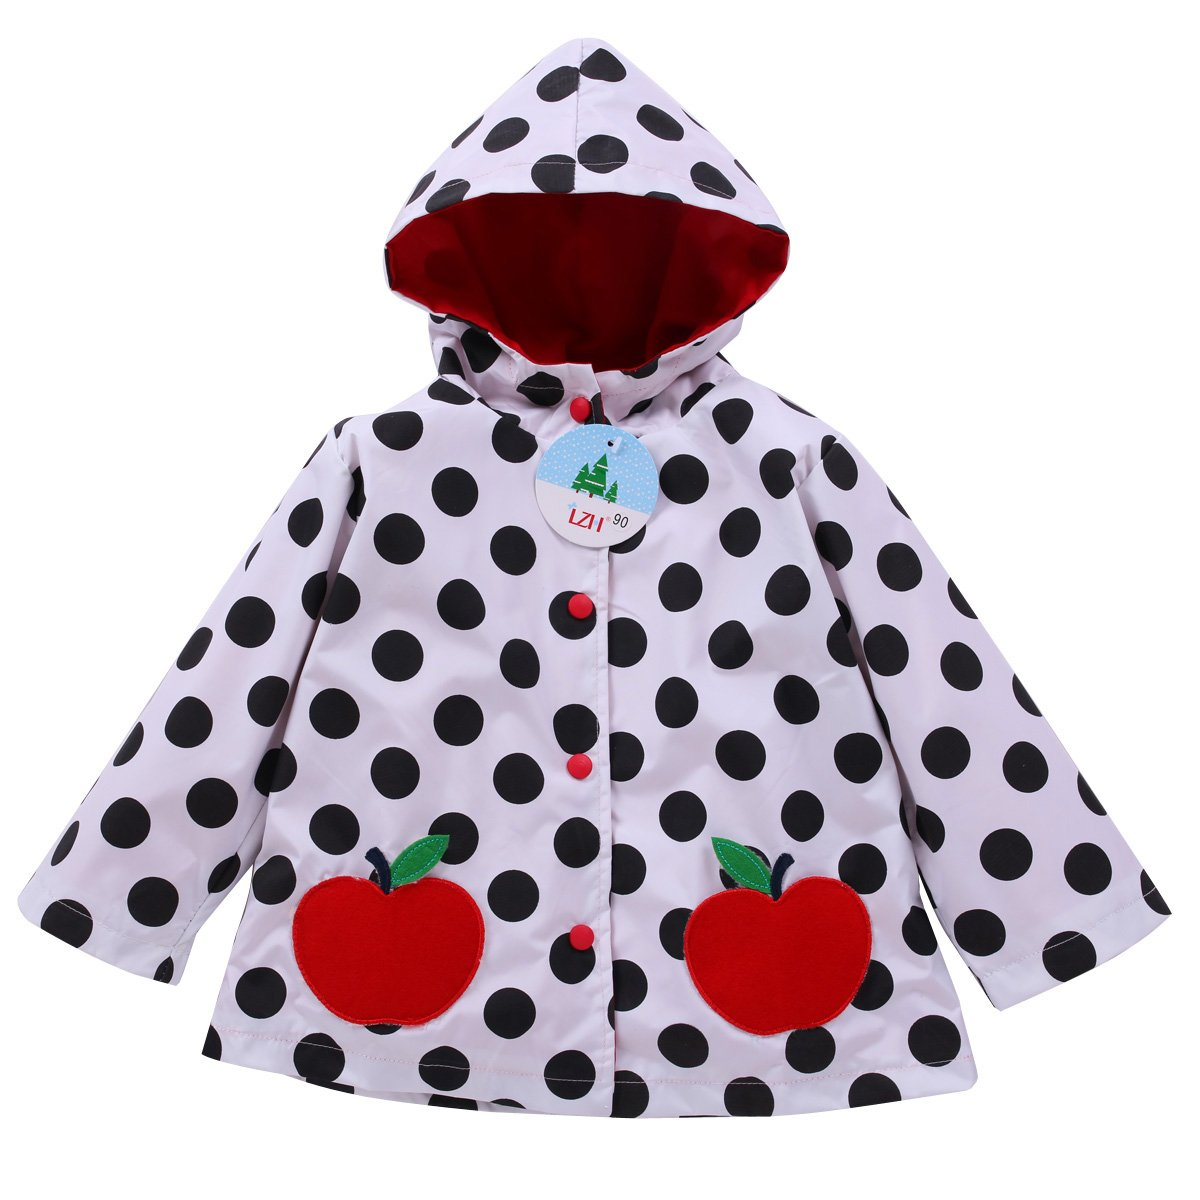 LZH Kids Girls Raincoat Waterproof Jacket Hooded Outerwear C201-203